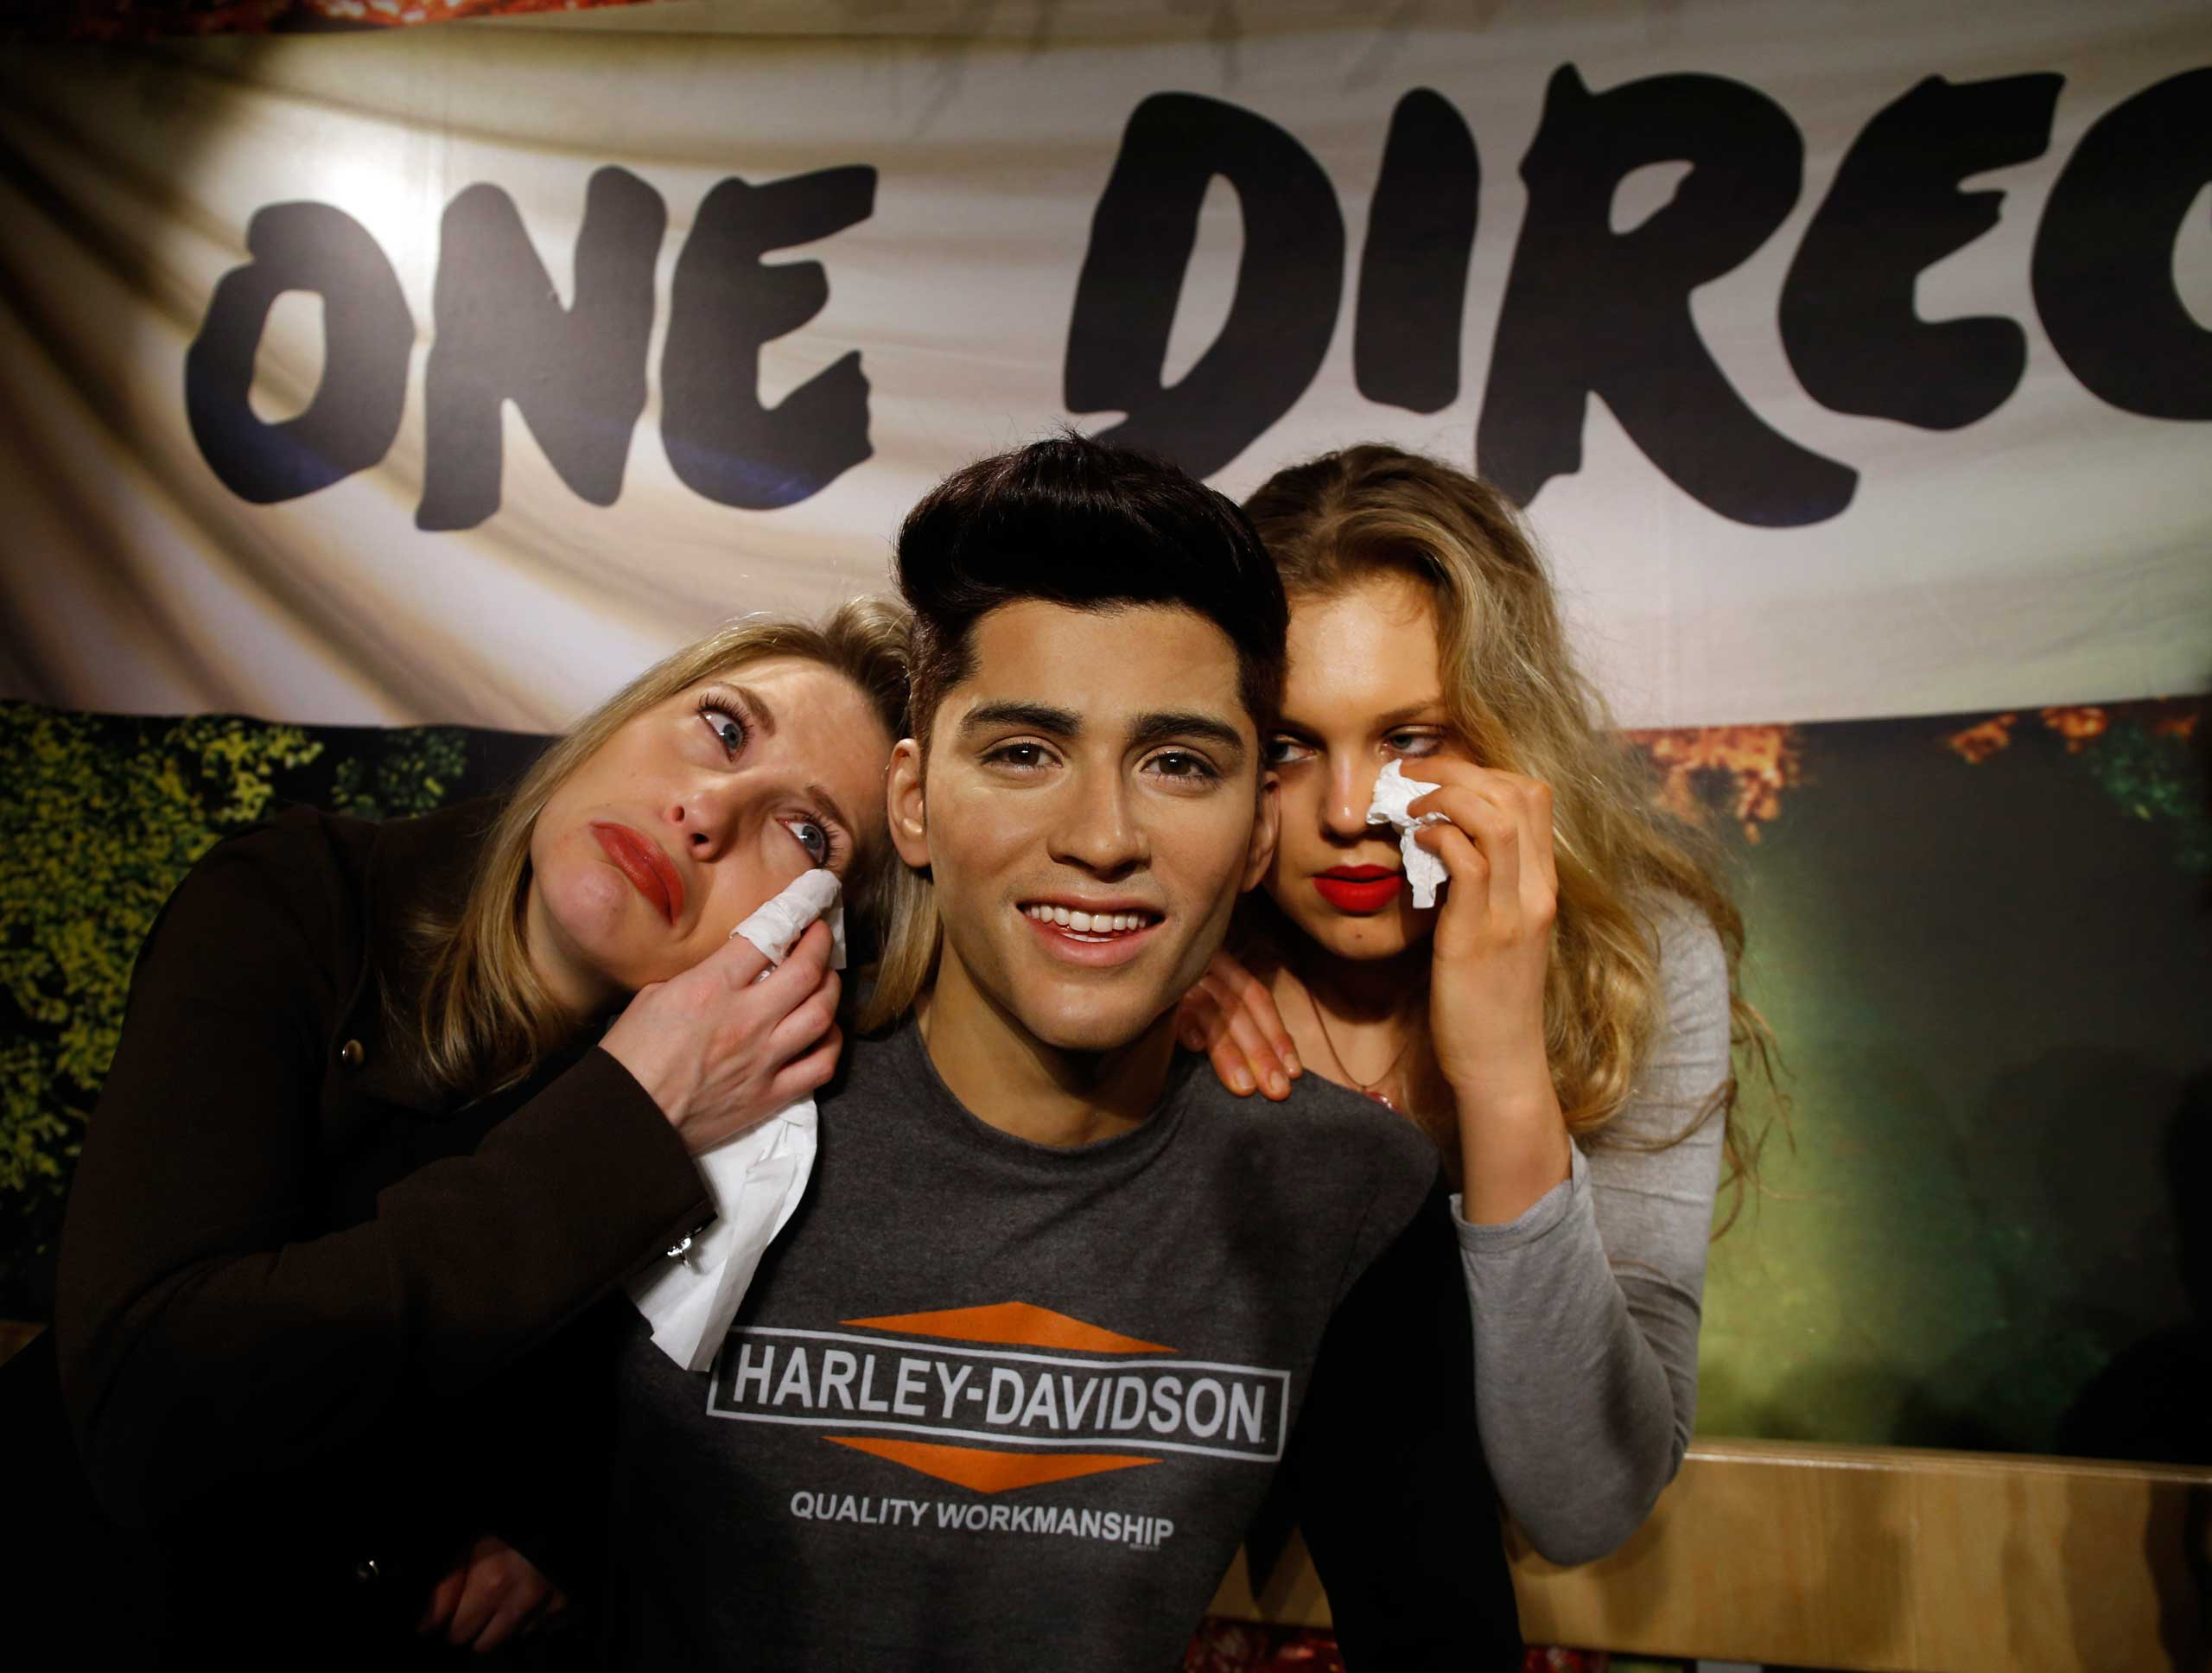 One Direction fans Laura Tokely and Lindsay Ringette wipe away tears following the news of the departure of Zayn Malik from One Direction on March 31, 2015 in London, England.